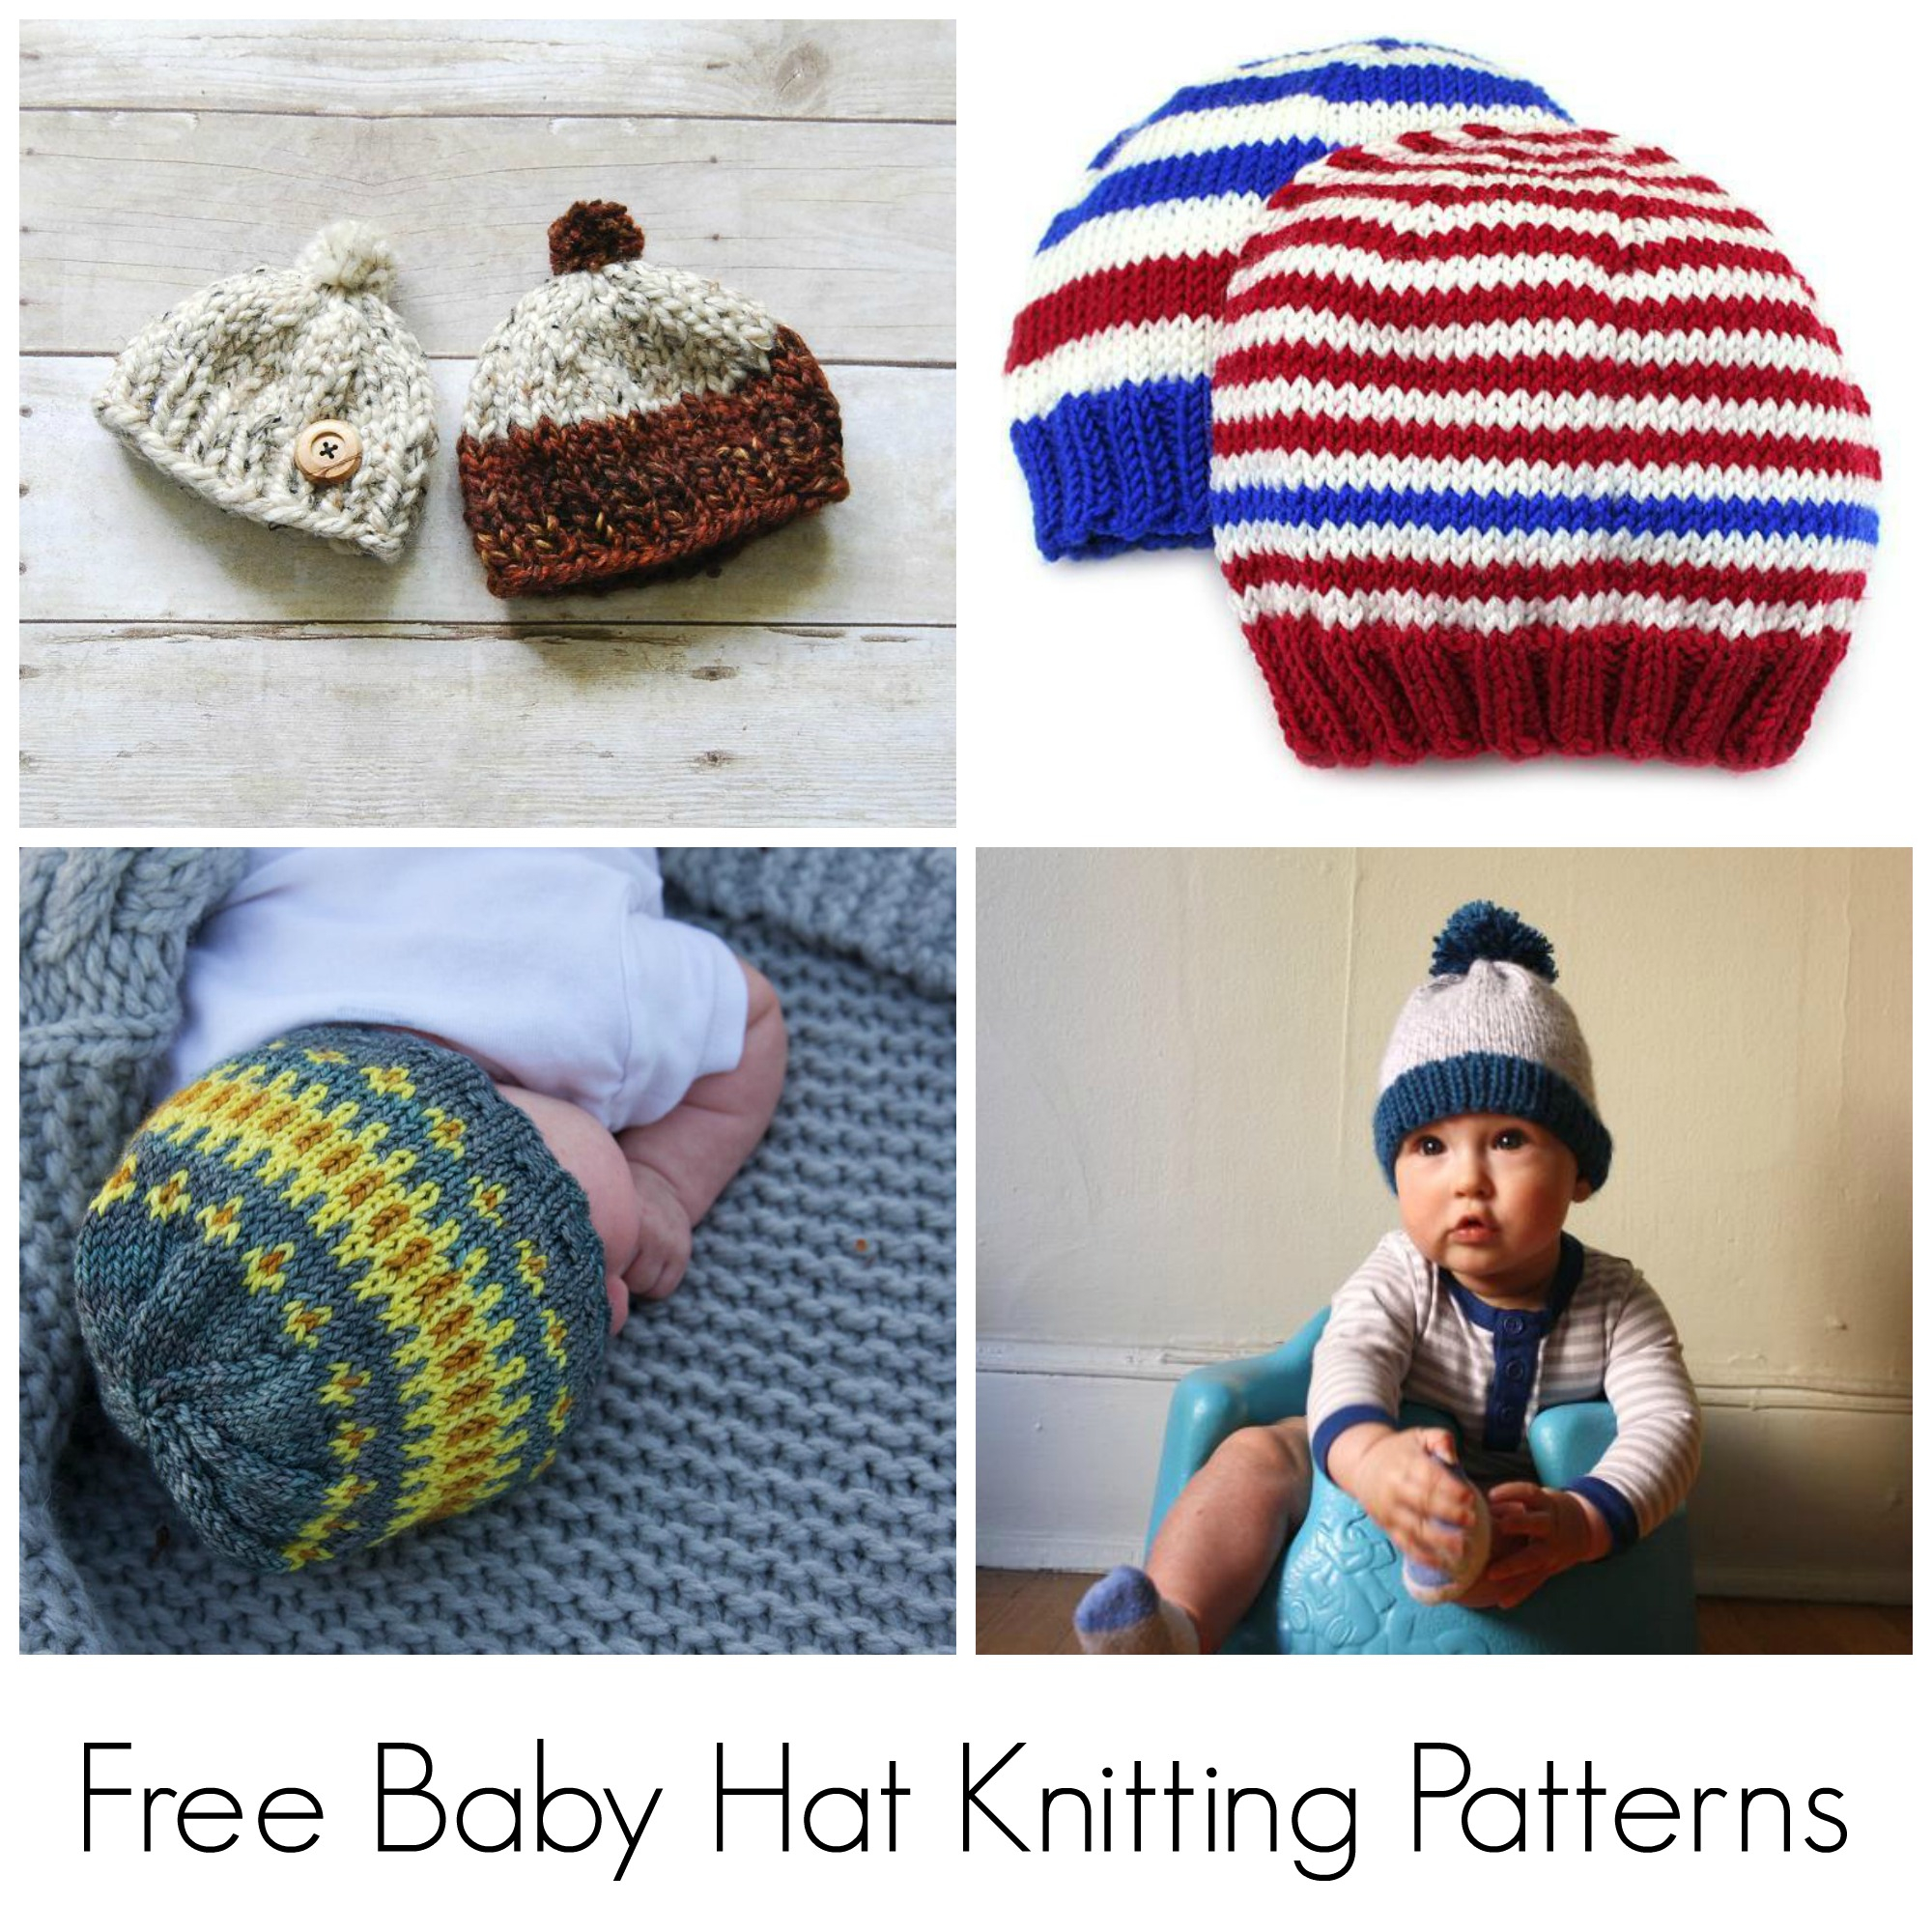 Free Knitting Patterns For Teens 10 Free Knitting Patterns For Ba Hats On Craftsy